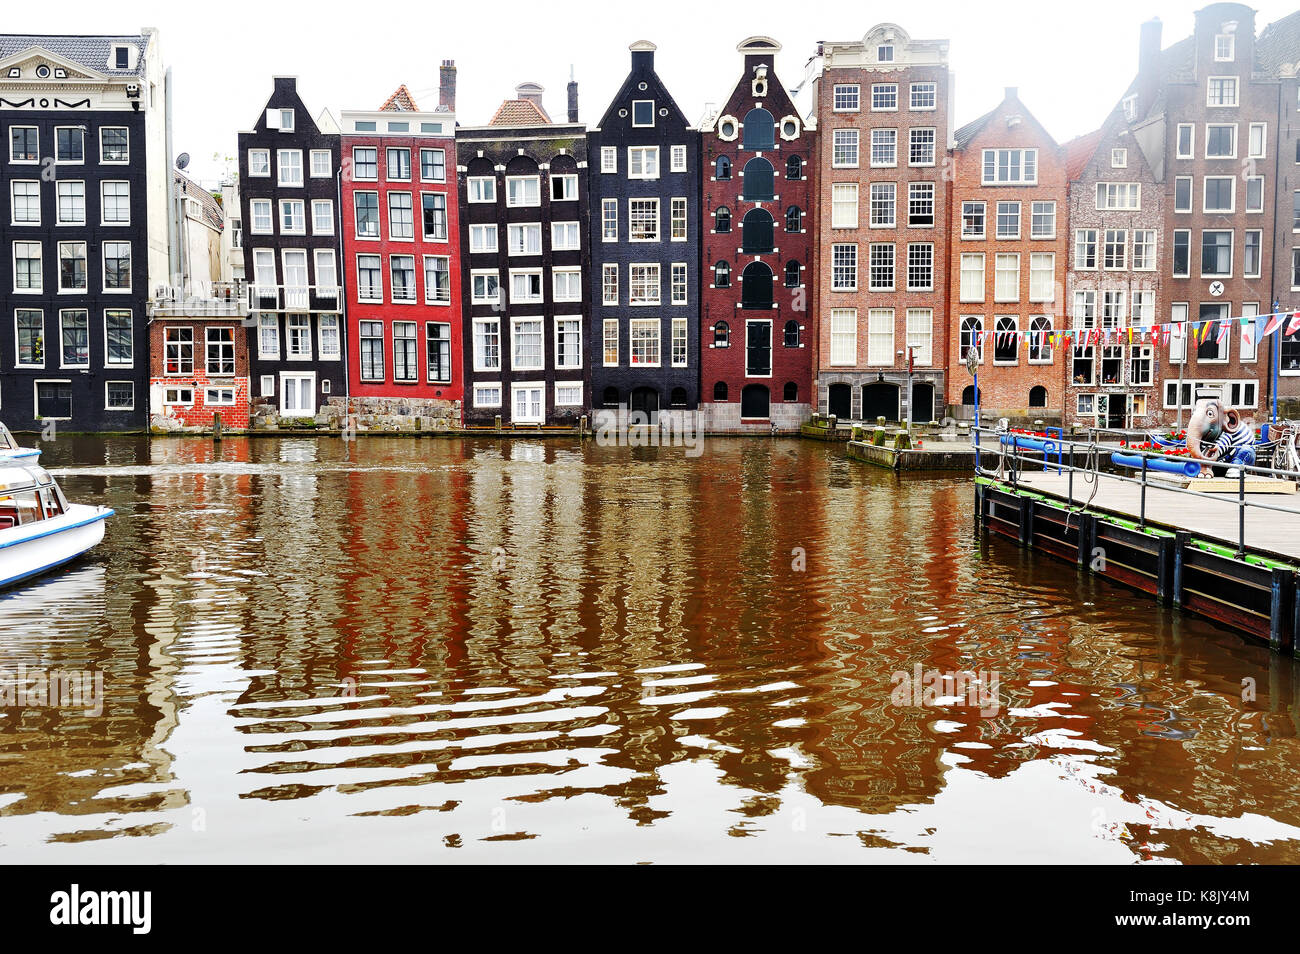 Amsterdam, Holland, Europe - view of a canal and characteristic buildings Stock Photo